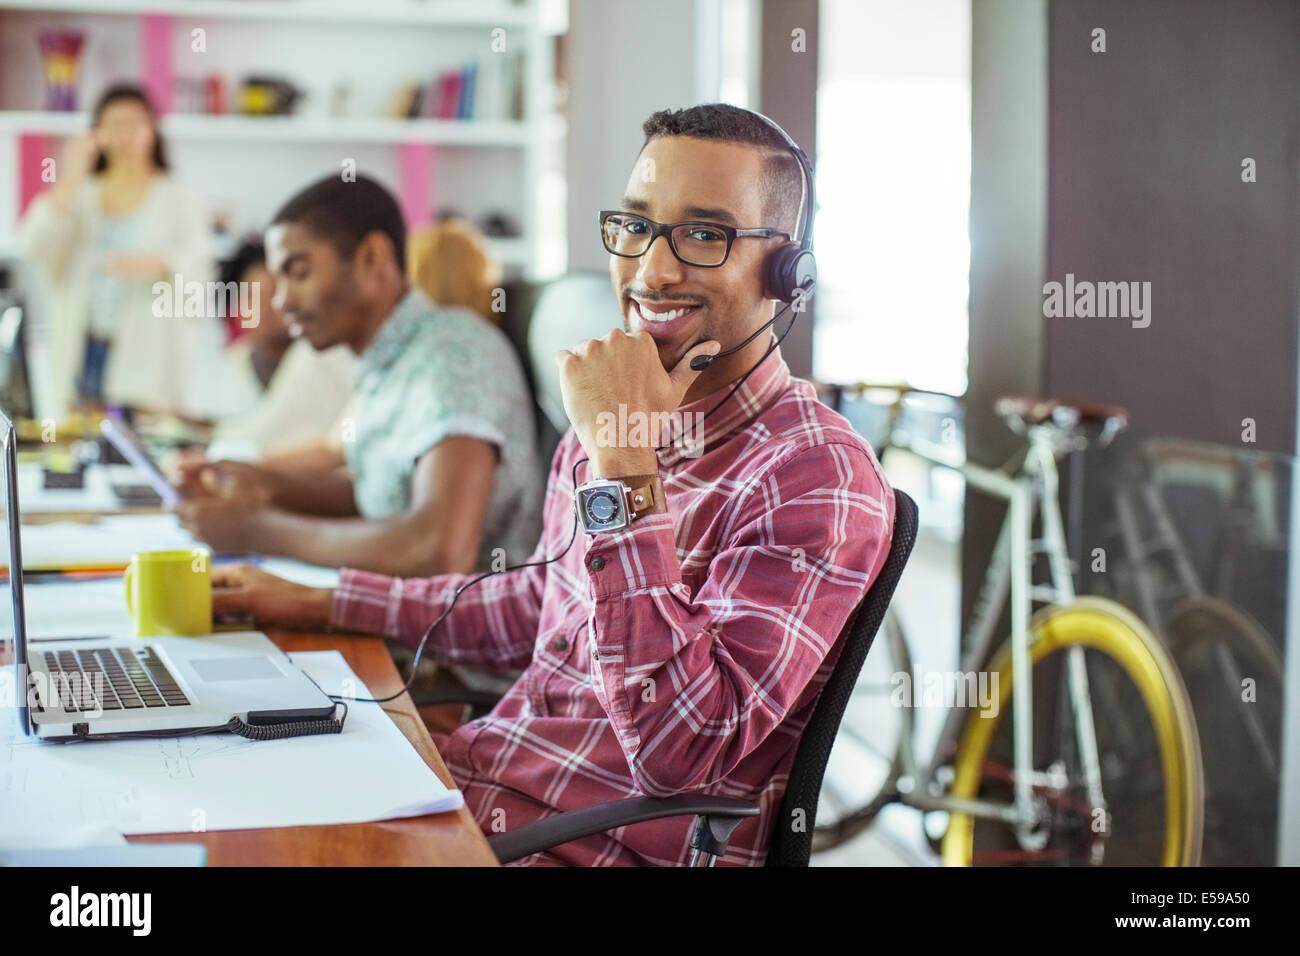 Man smiling at desk in office - Stock Image